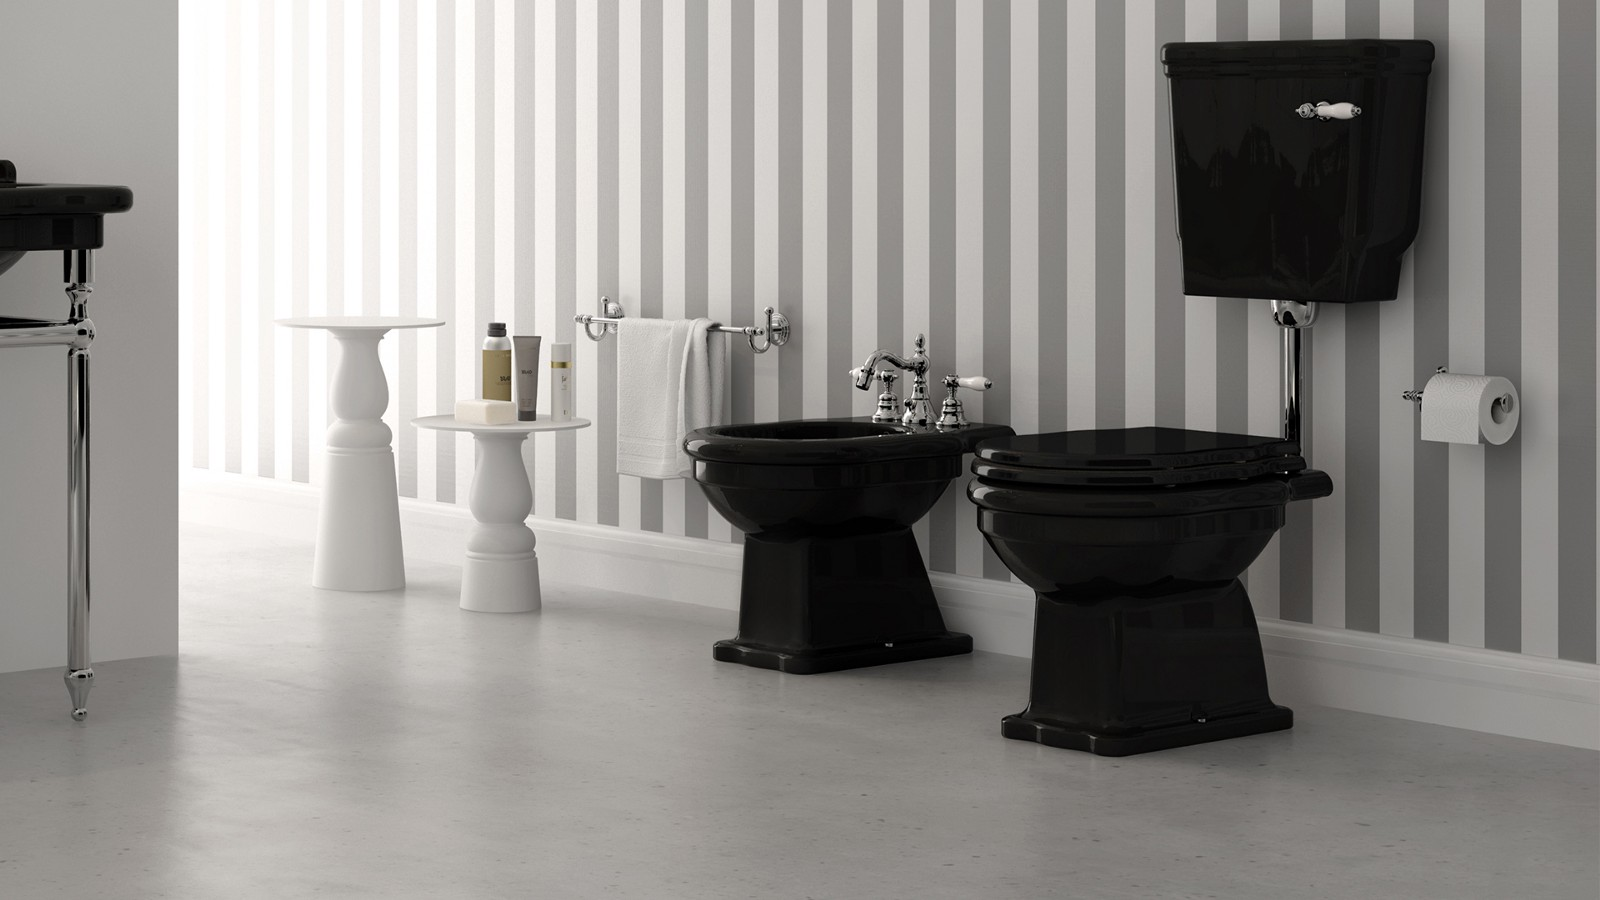 Toilet Accessories Accessories Add Warmth To Your Bathroom Bathline India Pvt Ltd